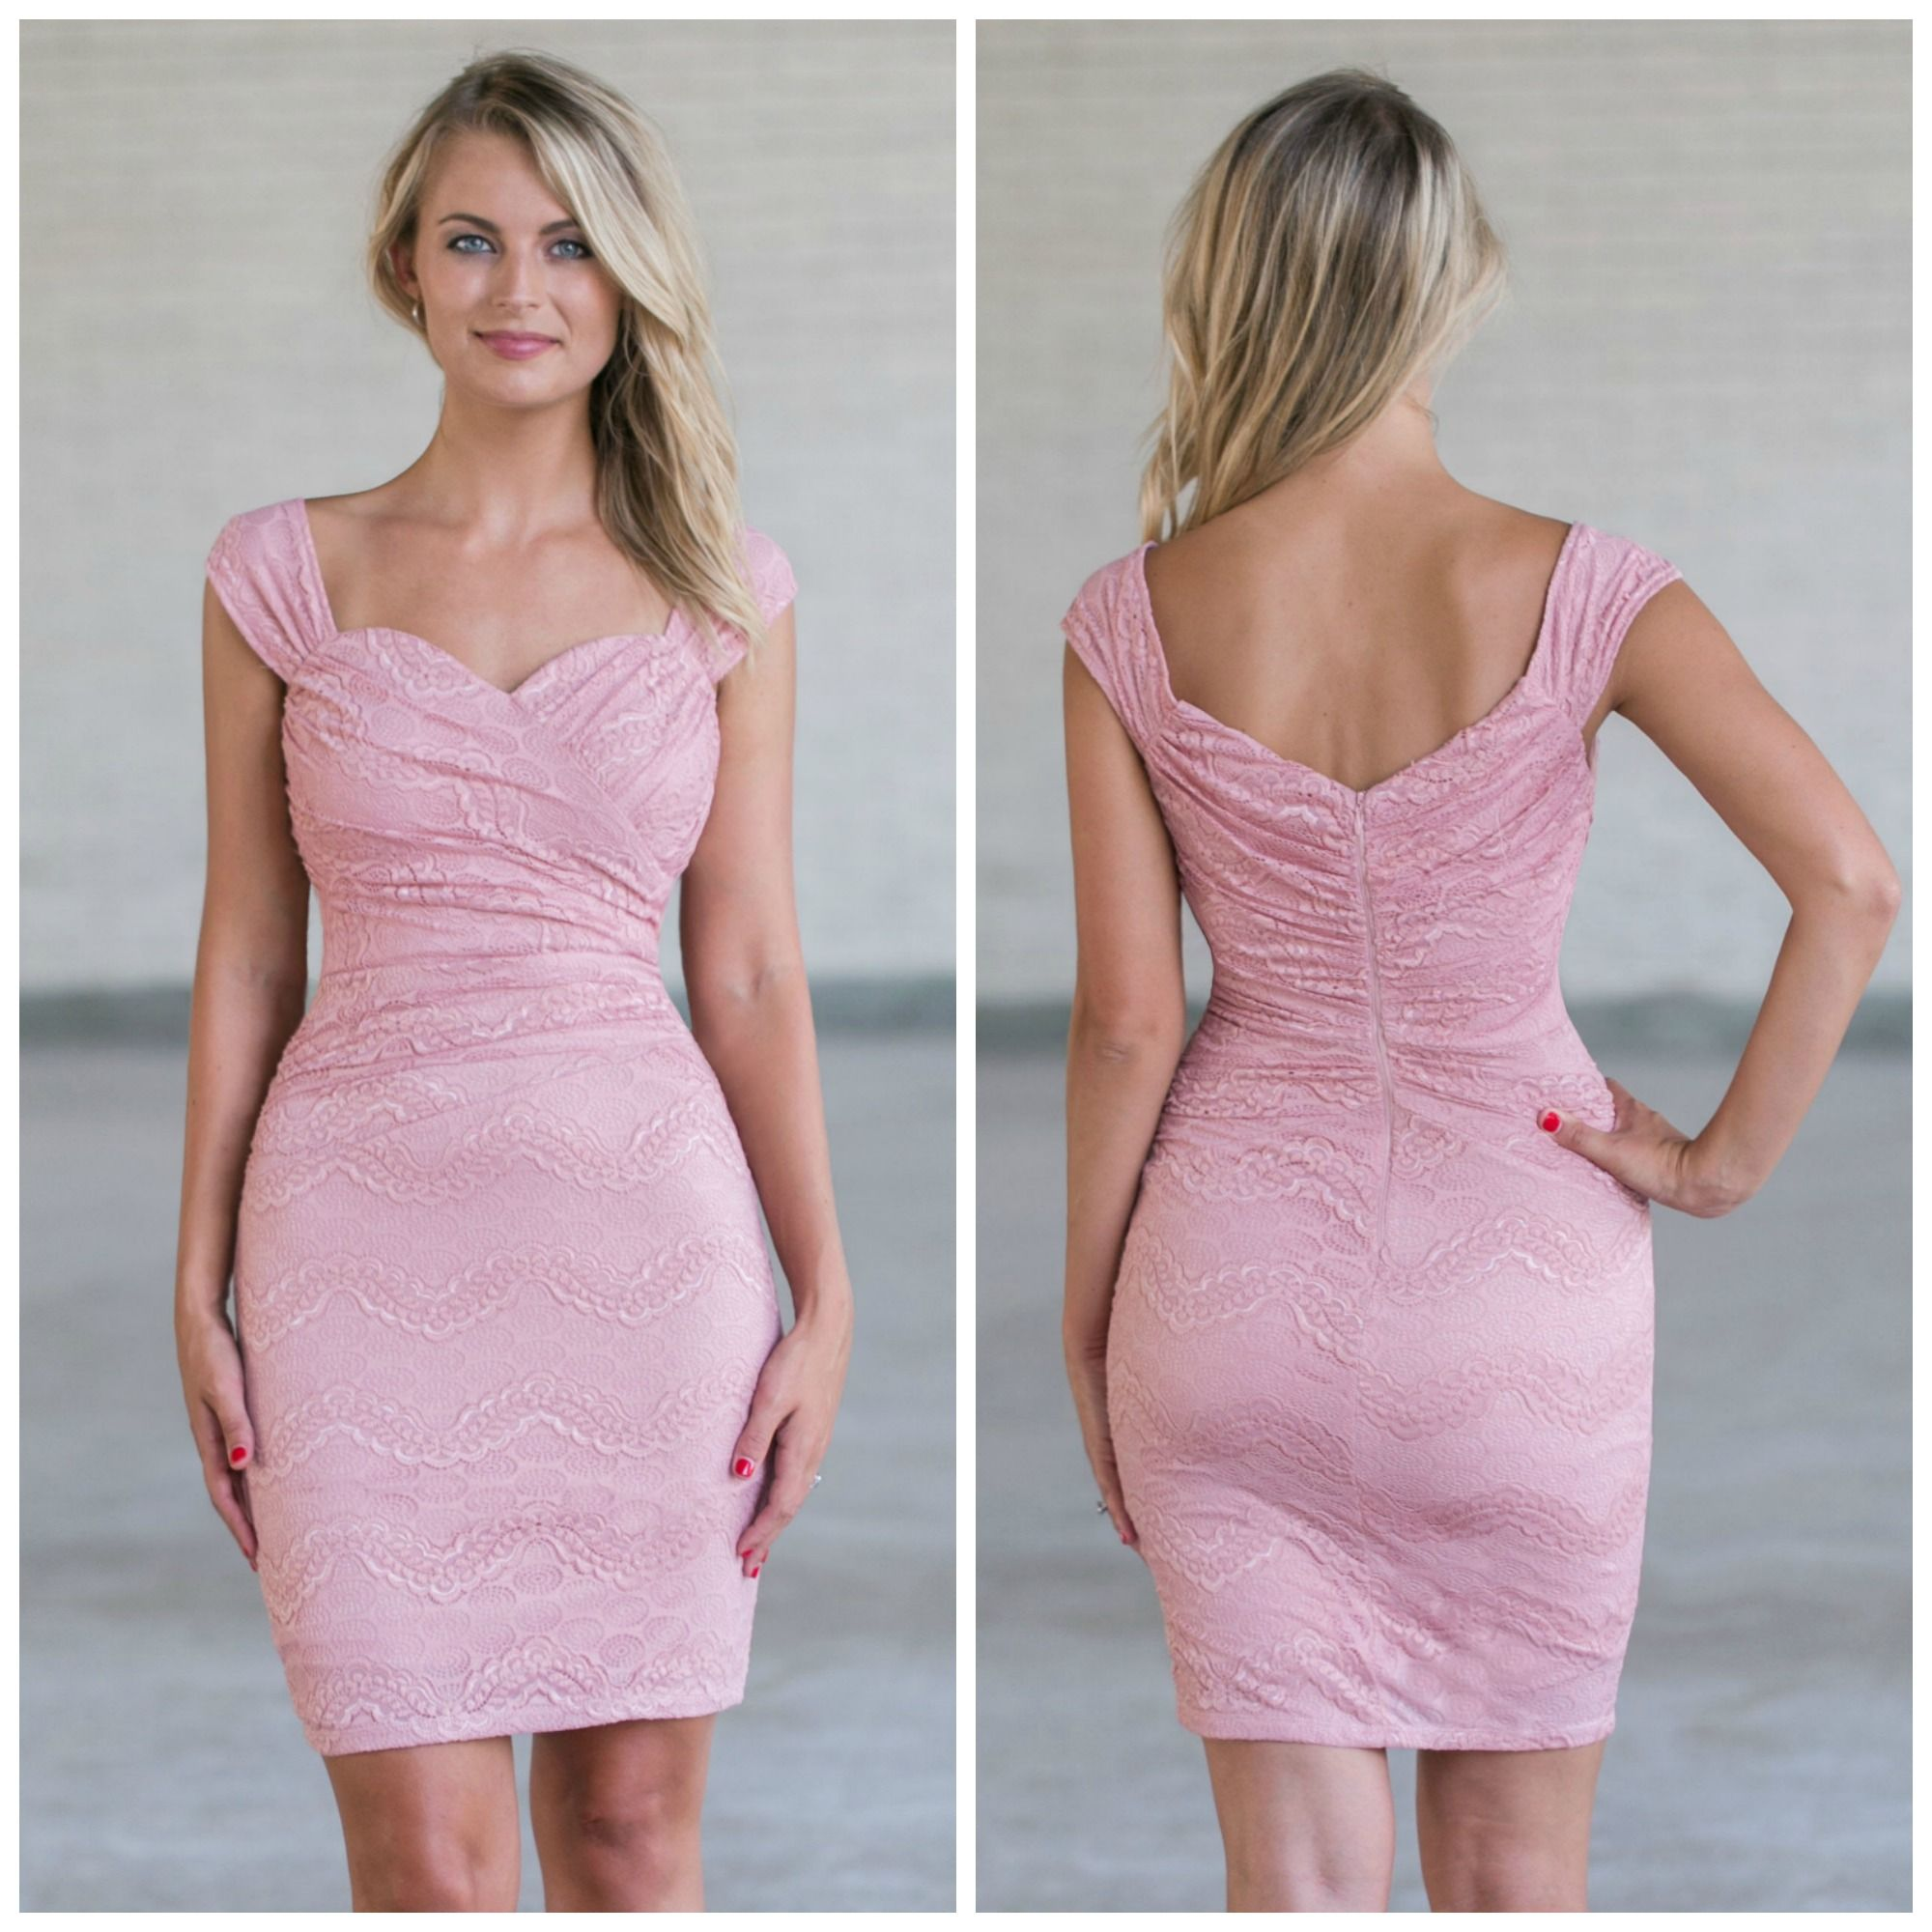 This pink lace dress has a fitted cut: http://ss1.us/a/eQwfs22p ...